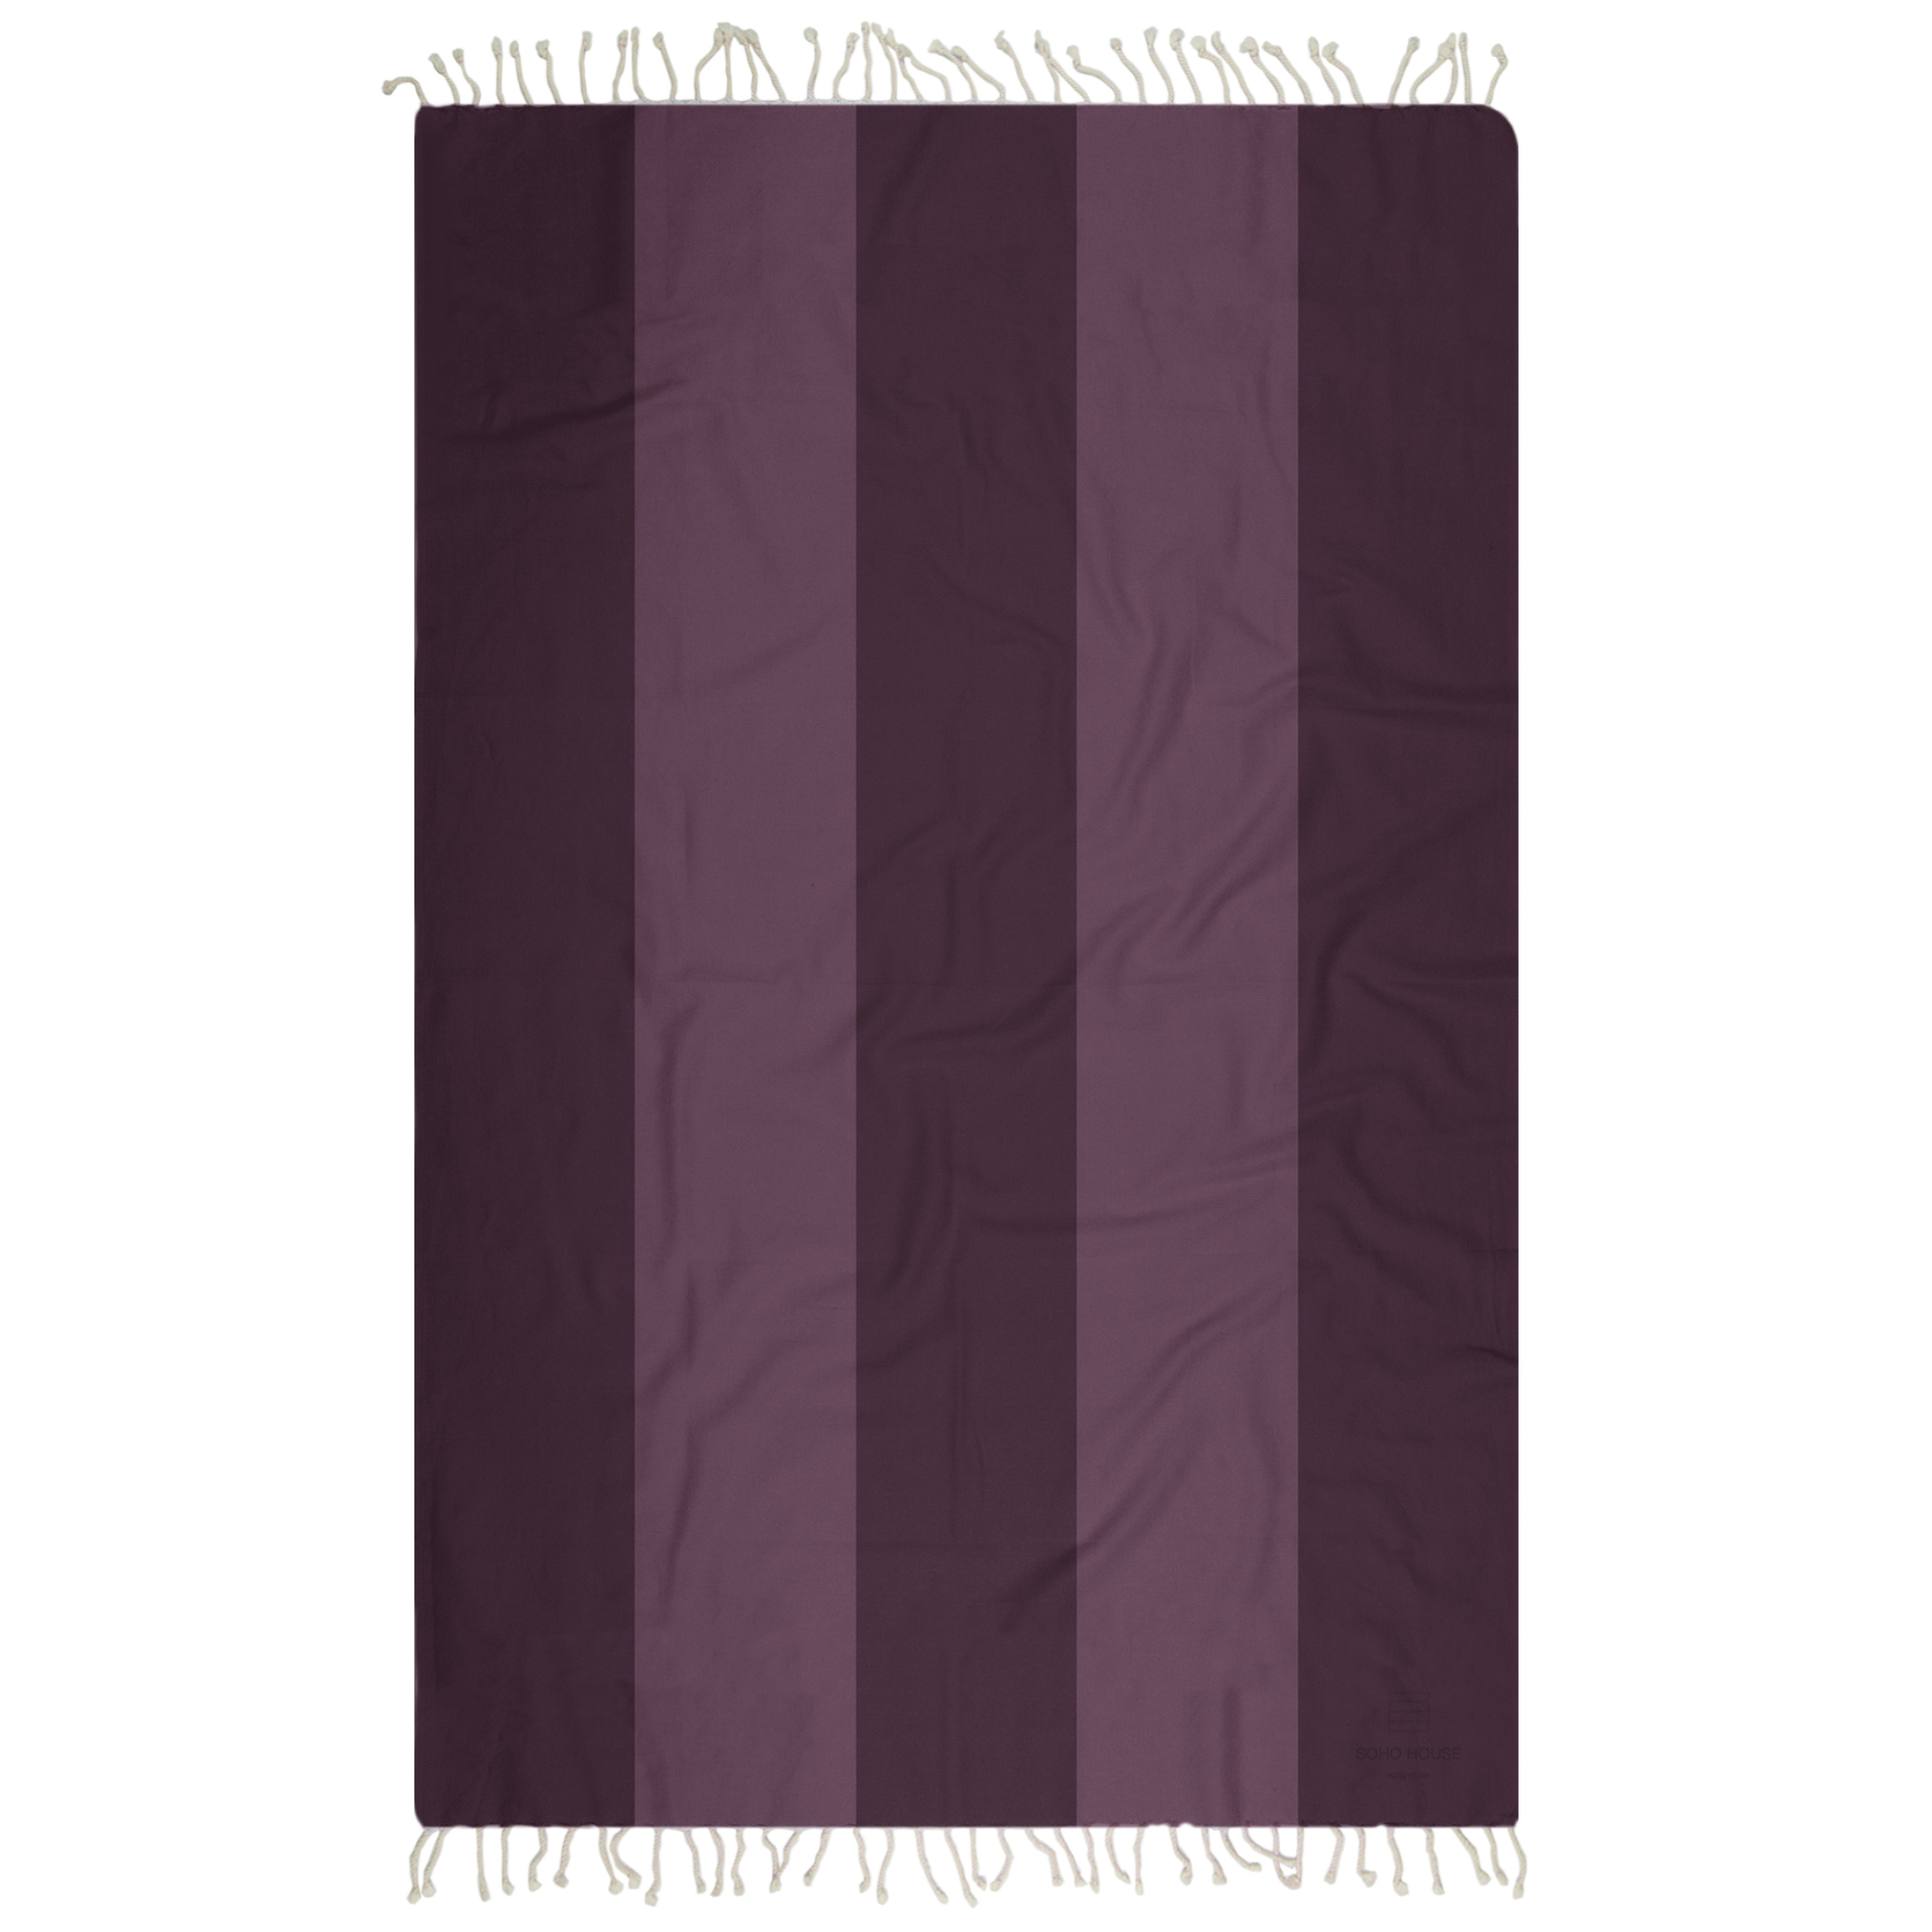 soho-house-new-york-spa-towel-collection-square